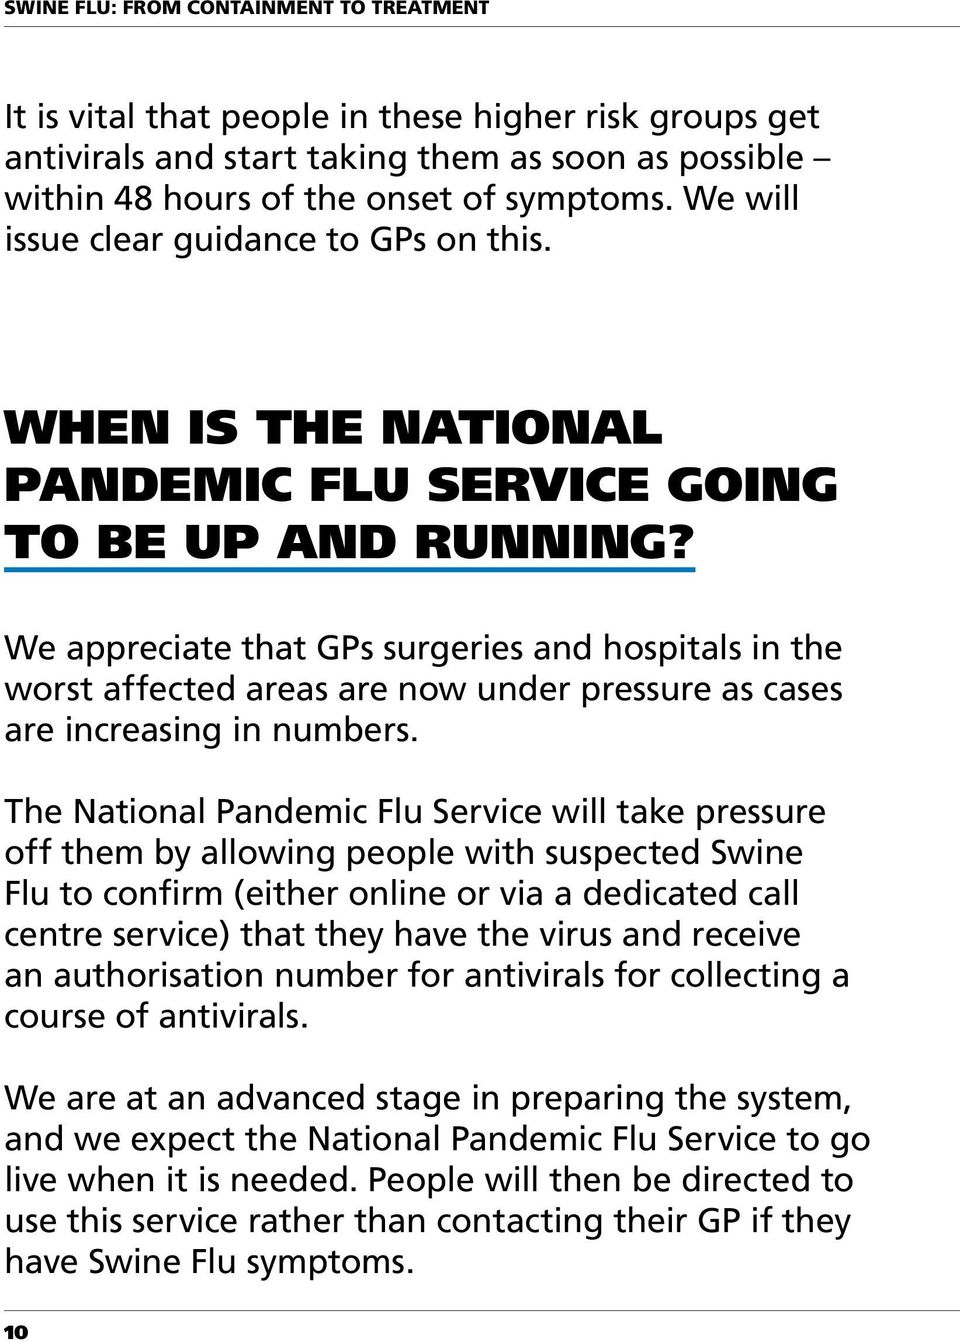 We appreciate that GPs surgeries and hospitals in the worst affected areas are now under pressure as cases are increasing in numbers.